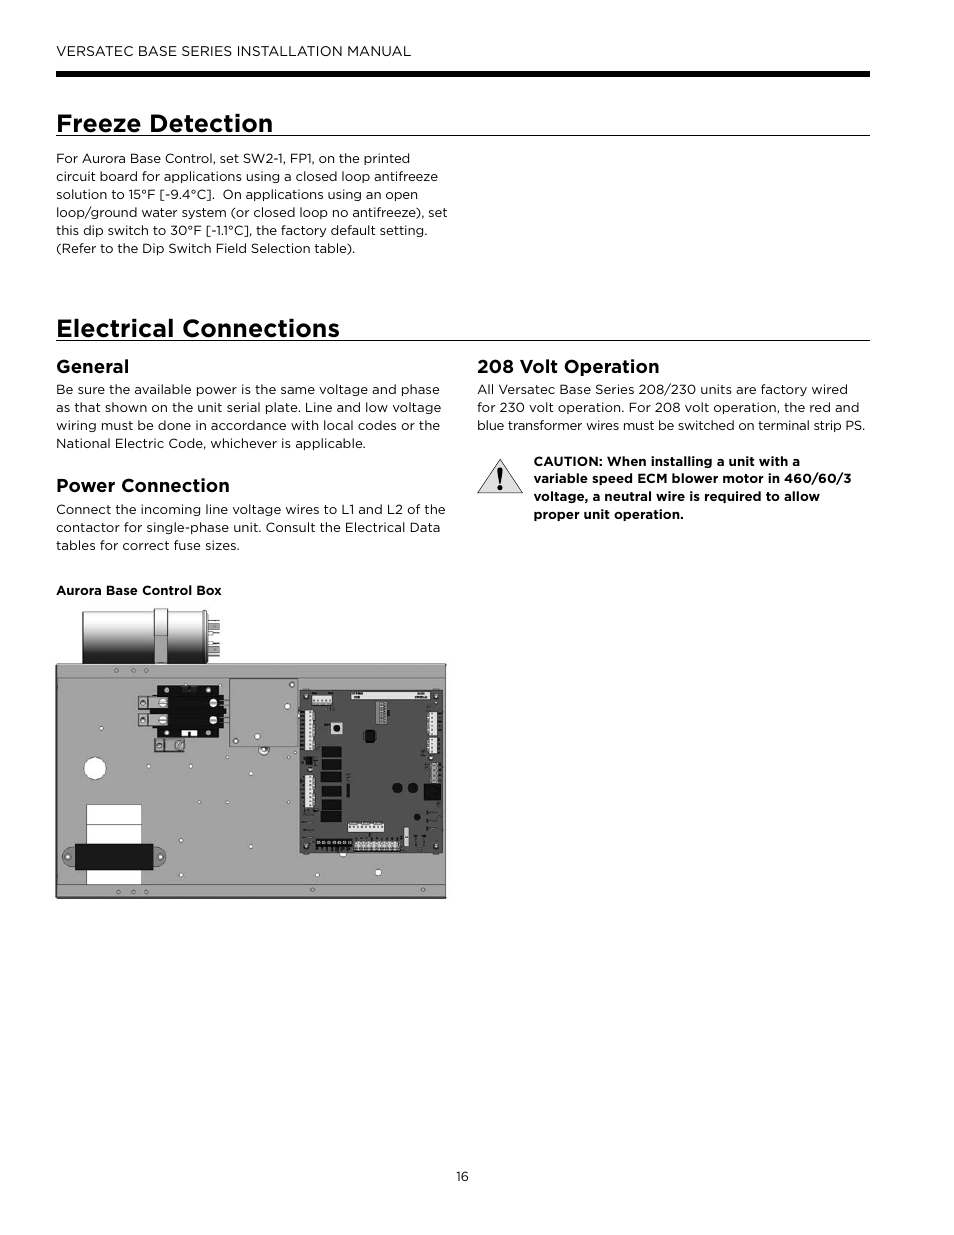 hight resolution of freeze detection electrical connections general waterfurnace versatec base user manual page 16 56